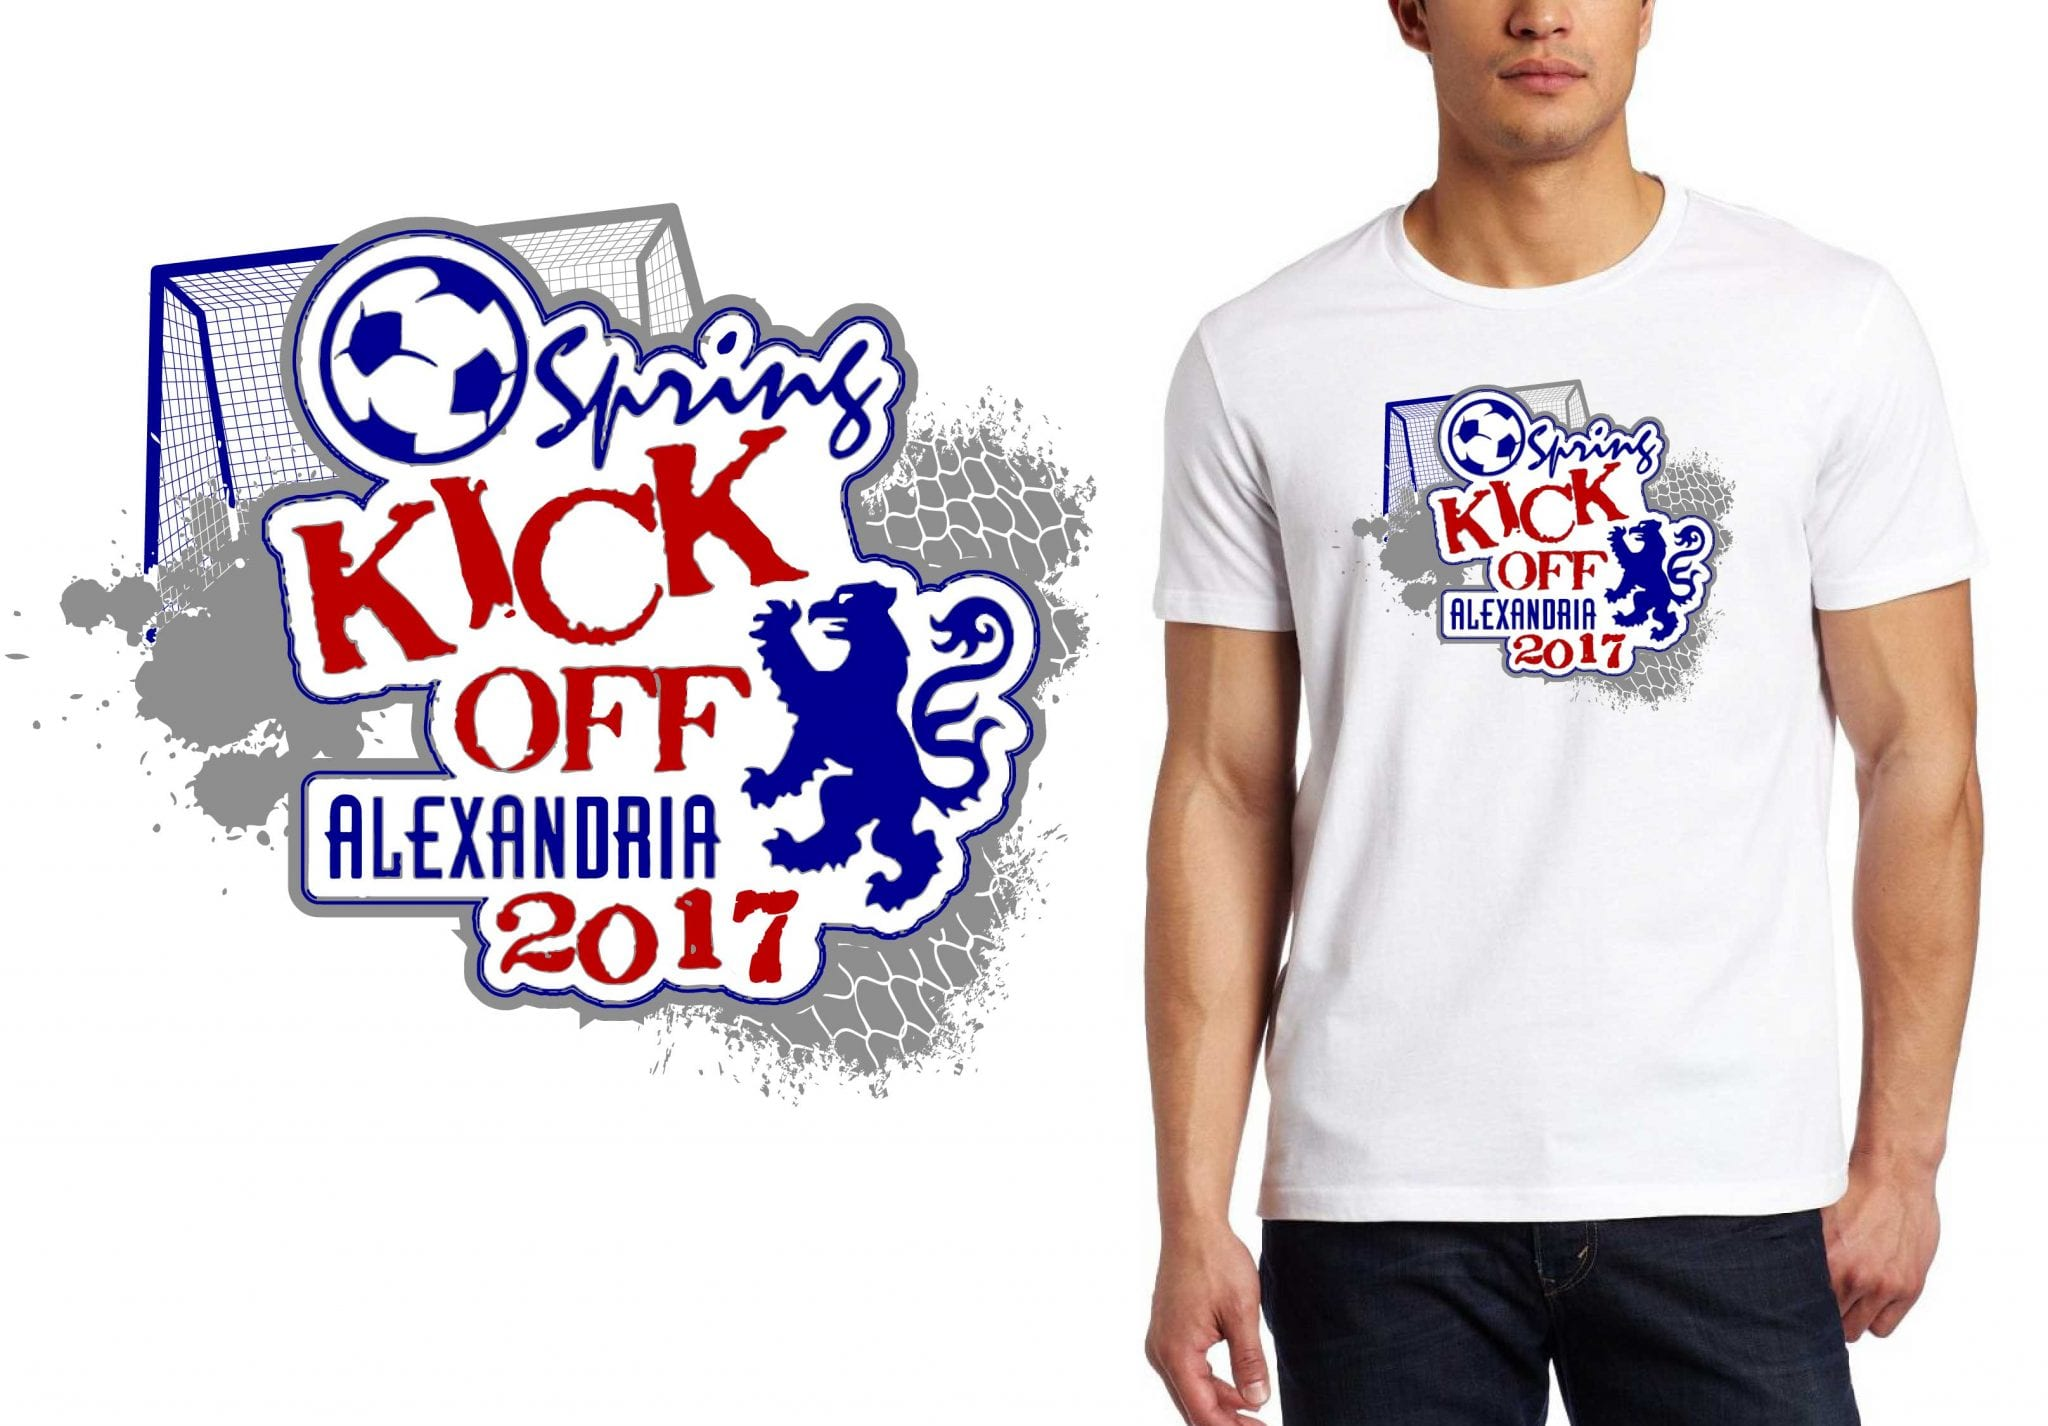 2017 Alexandria Soccer Kickoff Boys vector logo design for soccer t-shirt UrArtStudio